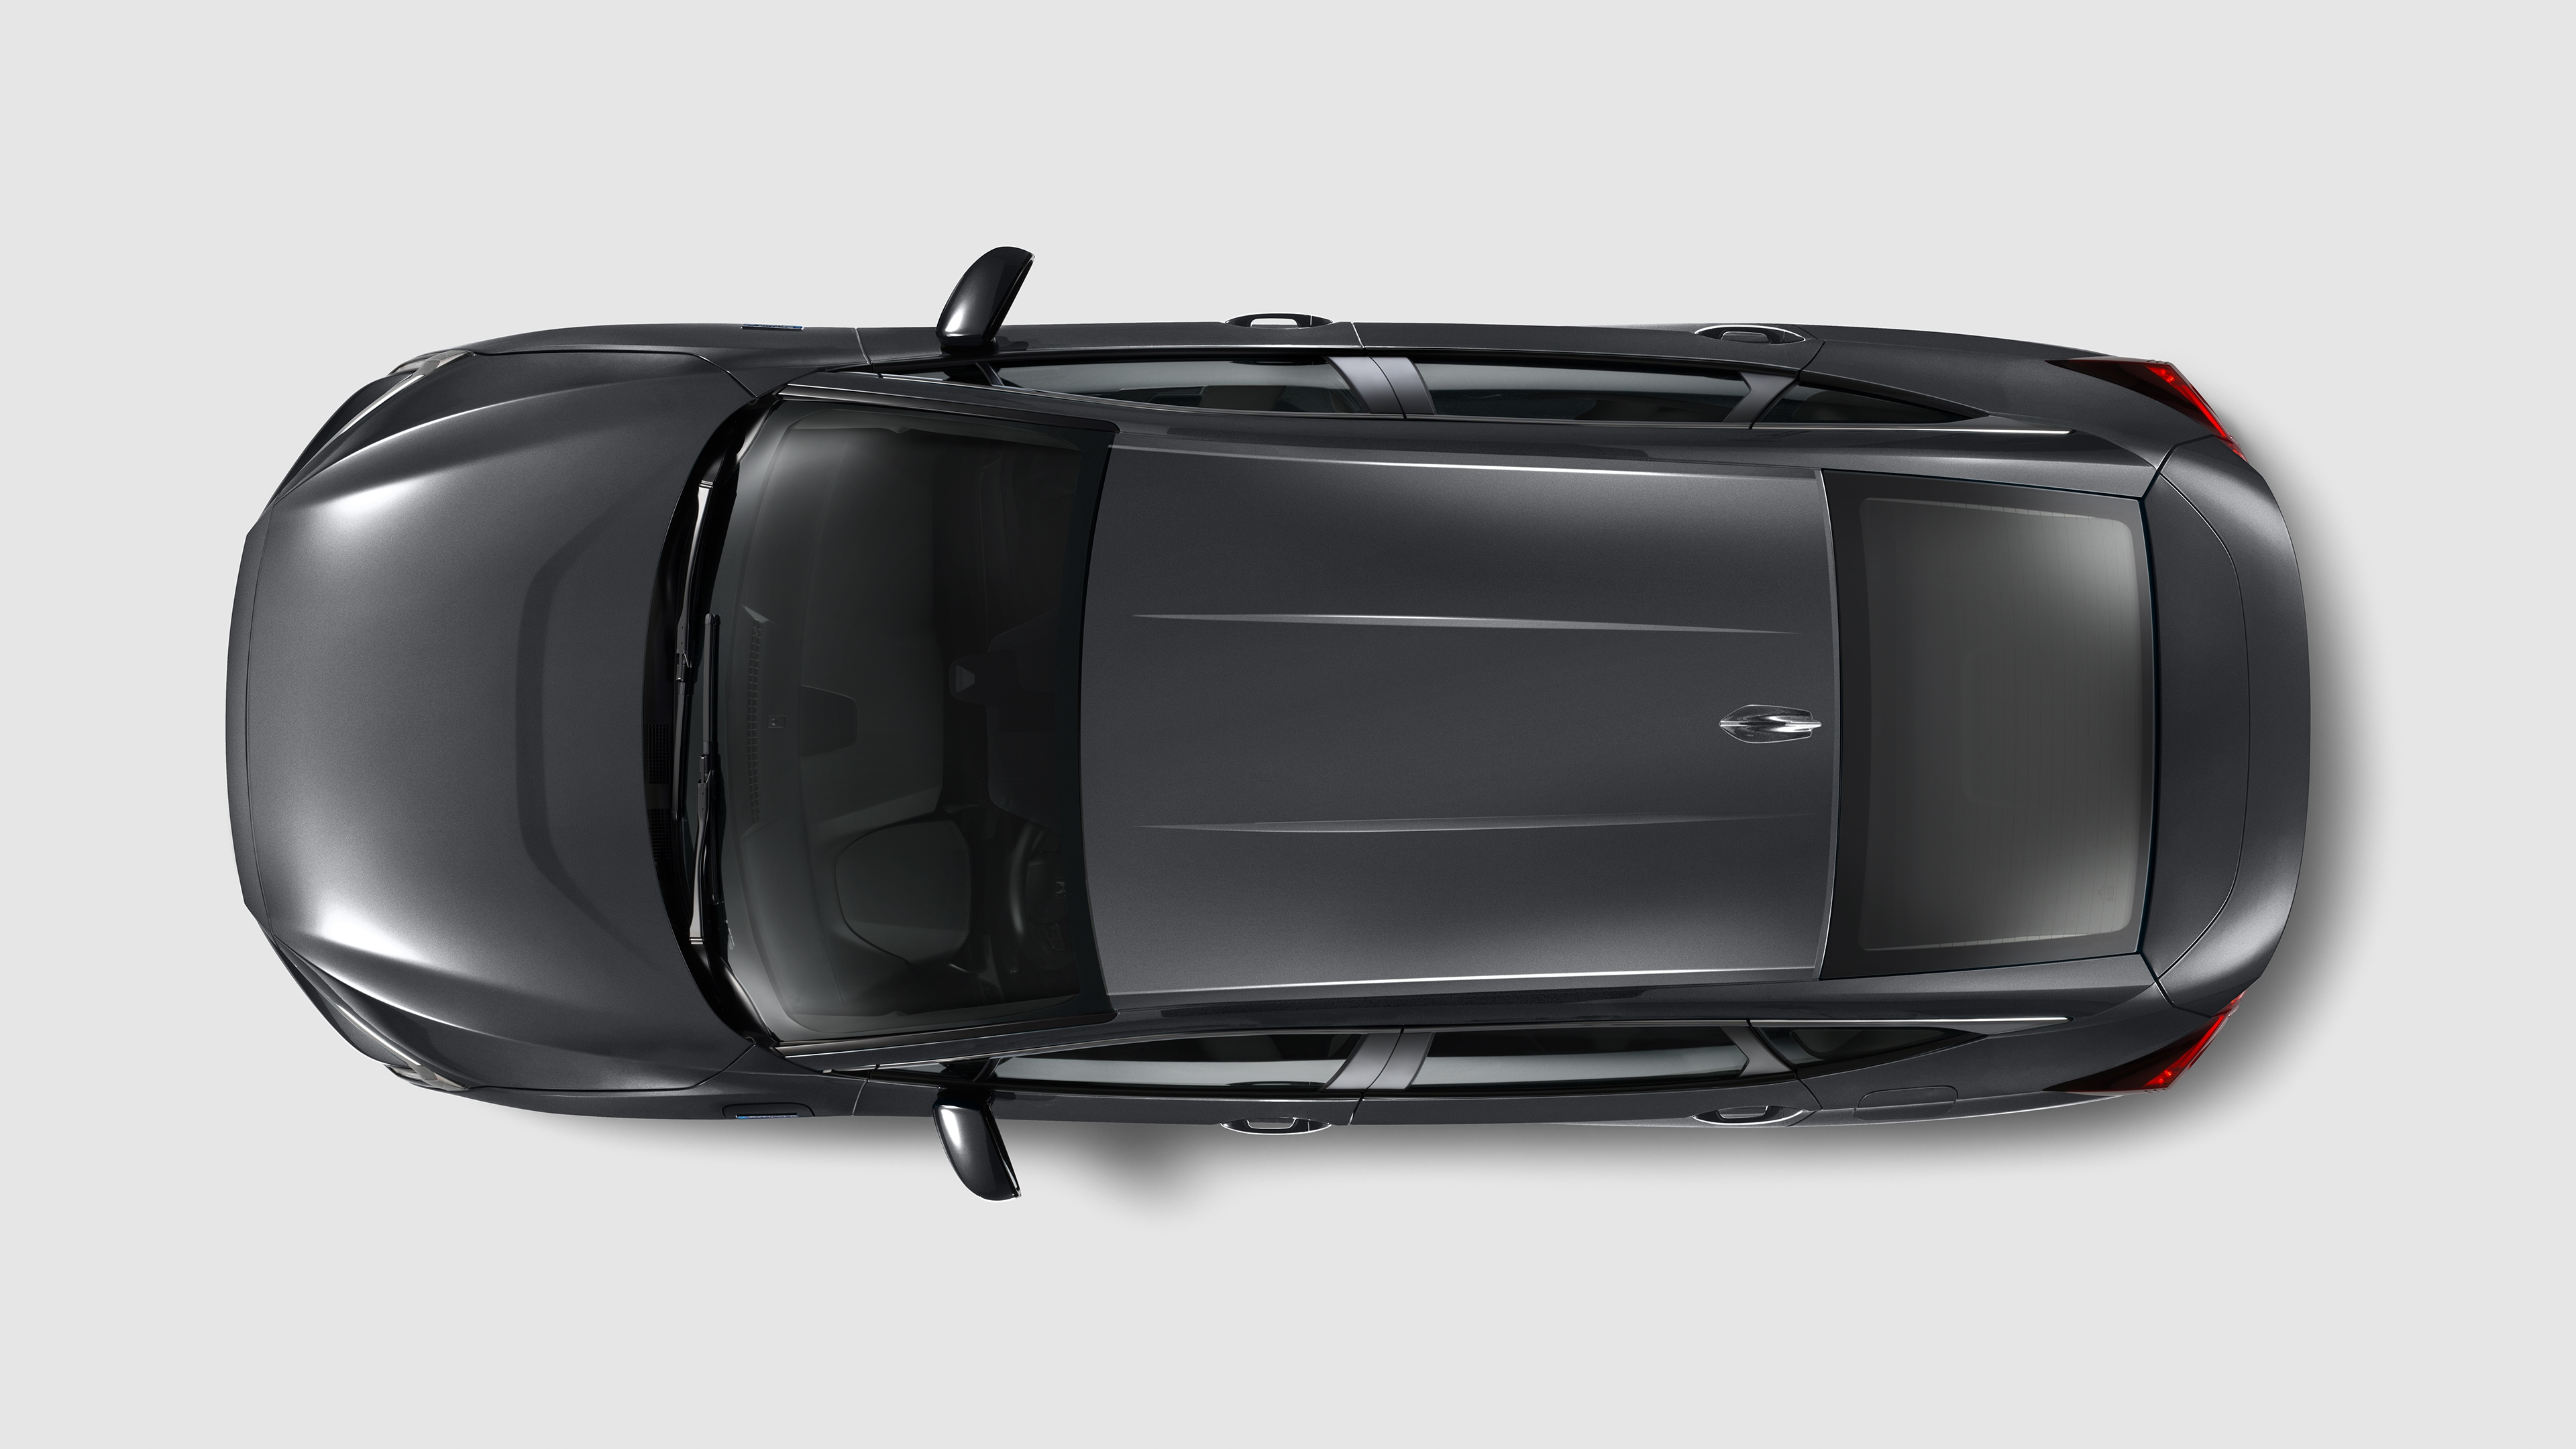 2021 Honda Clarity from above